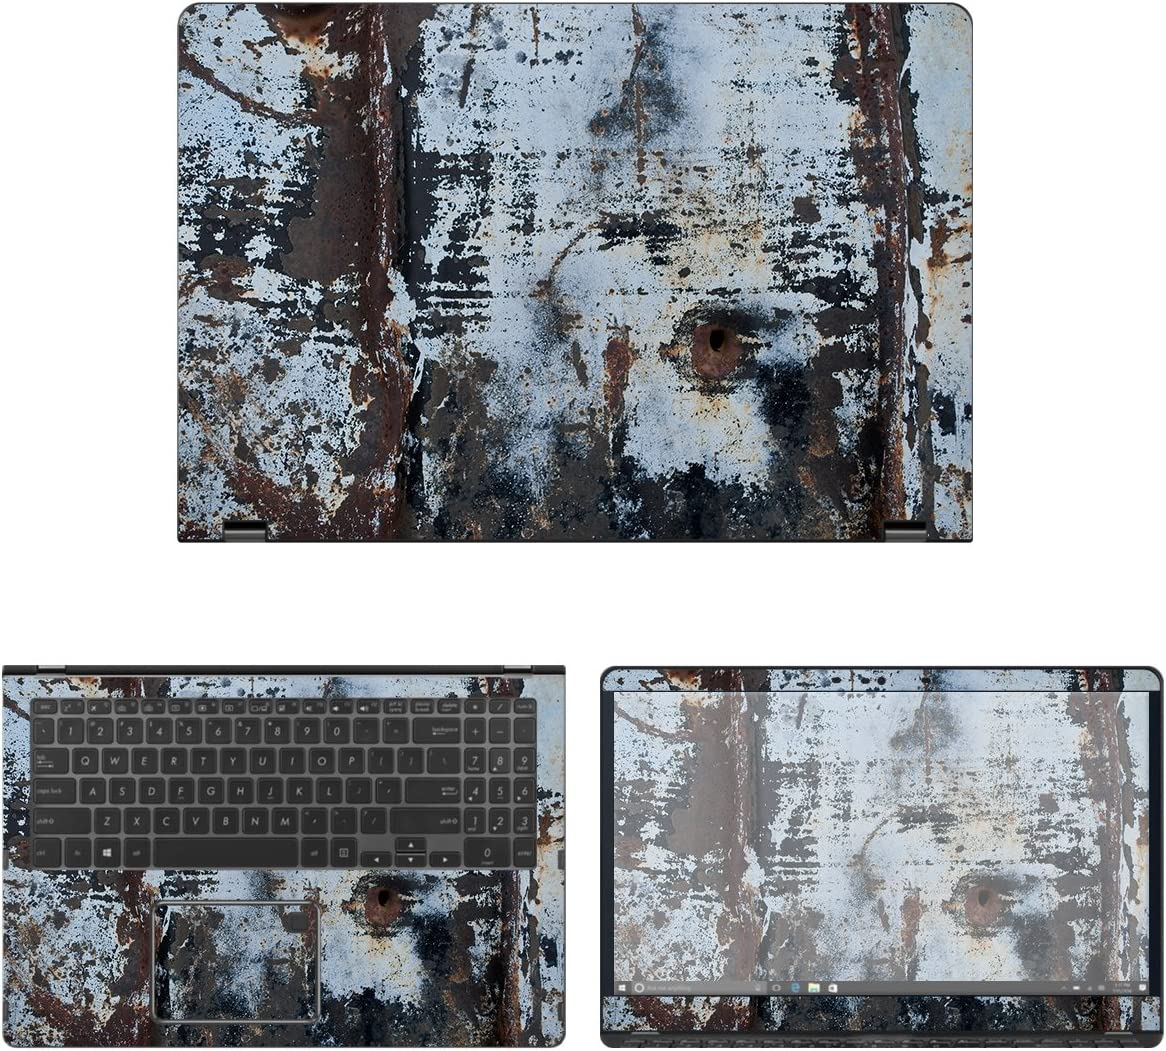 decalrus - Protective Decal Rust mart Skin Q525UA Sacramento Mall 2- Sticker Asus for